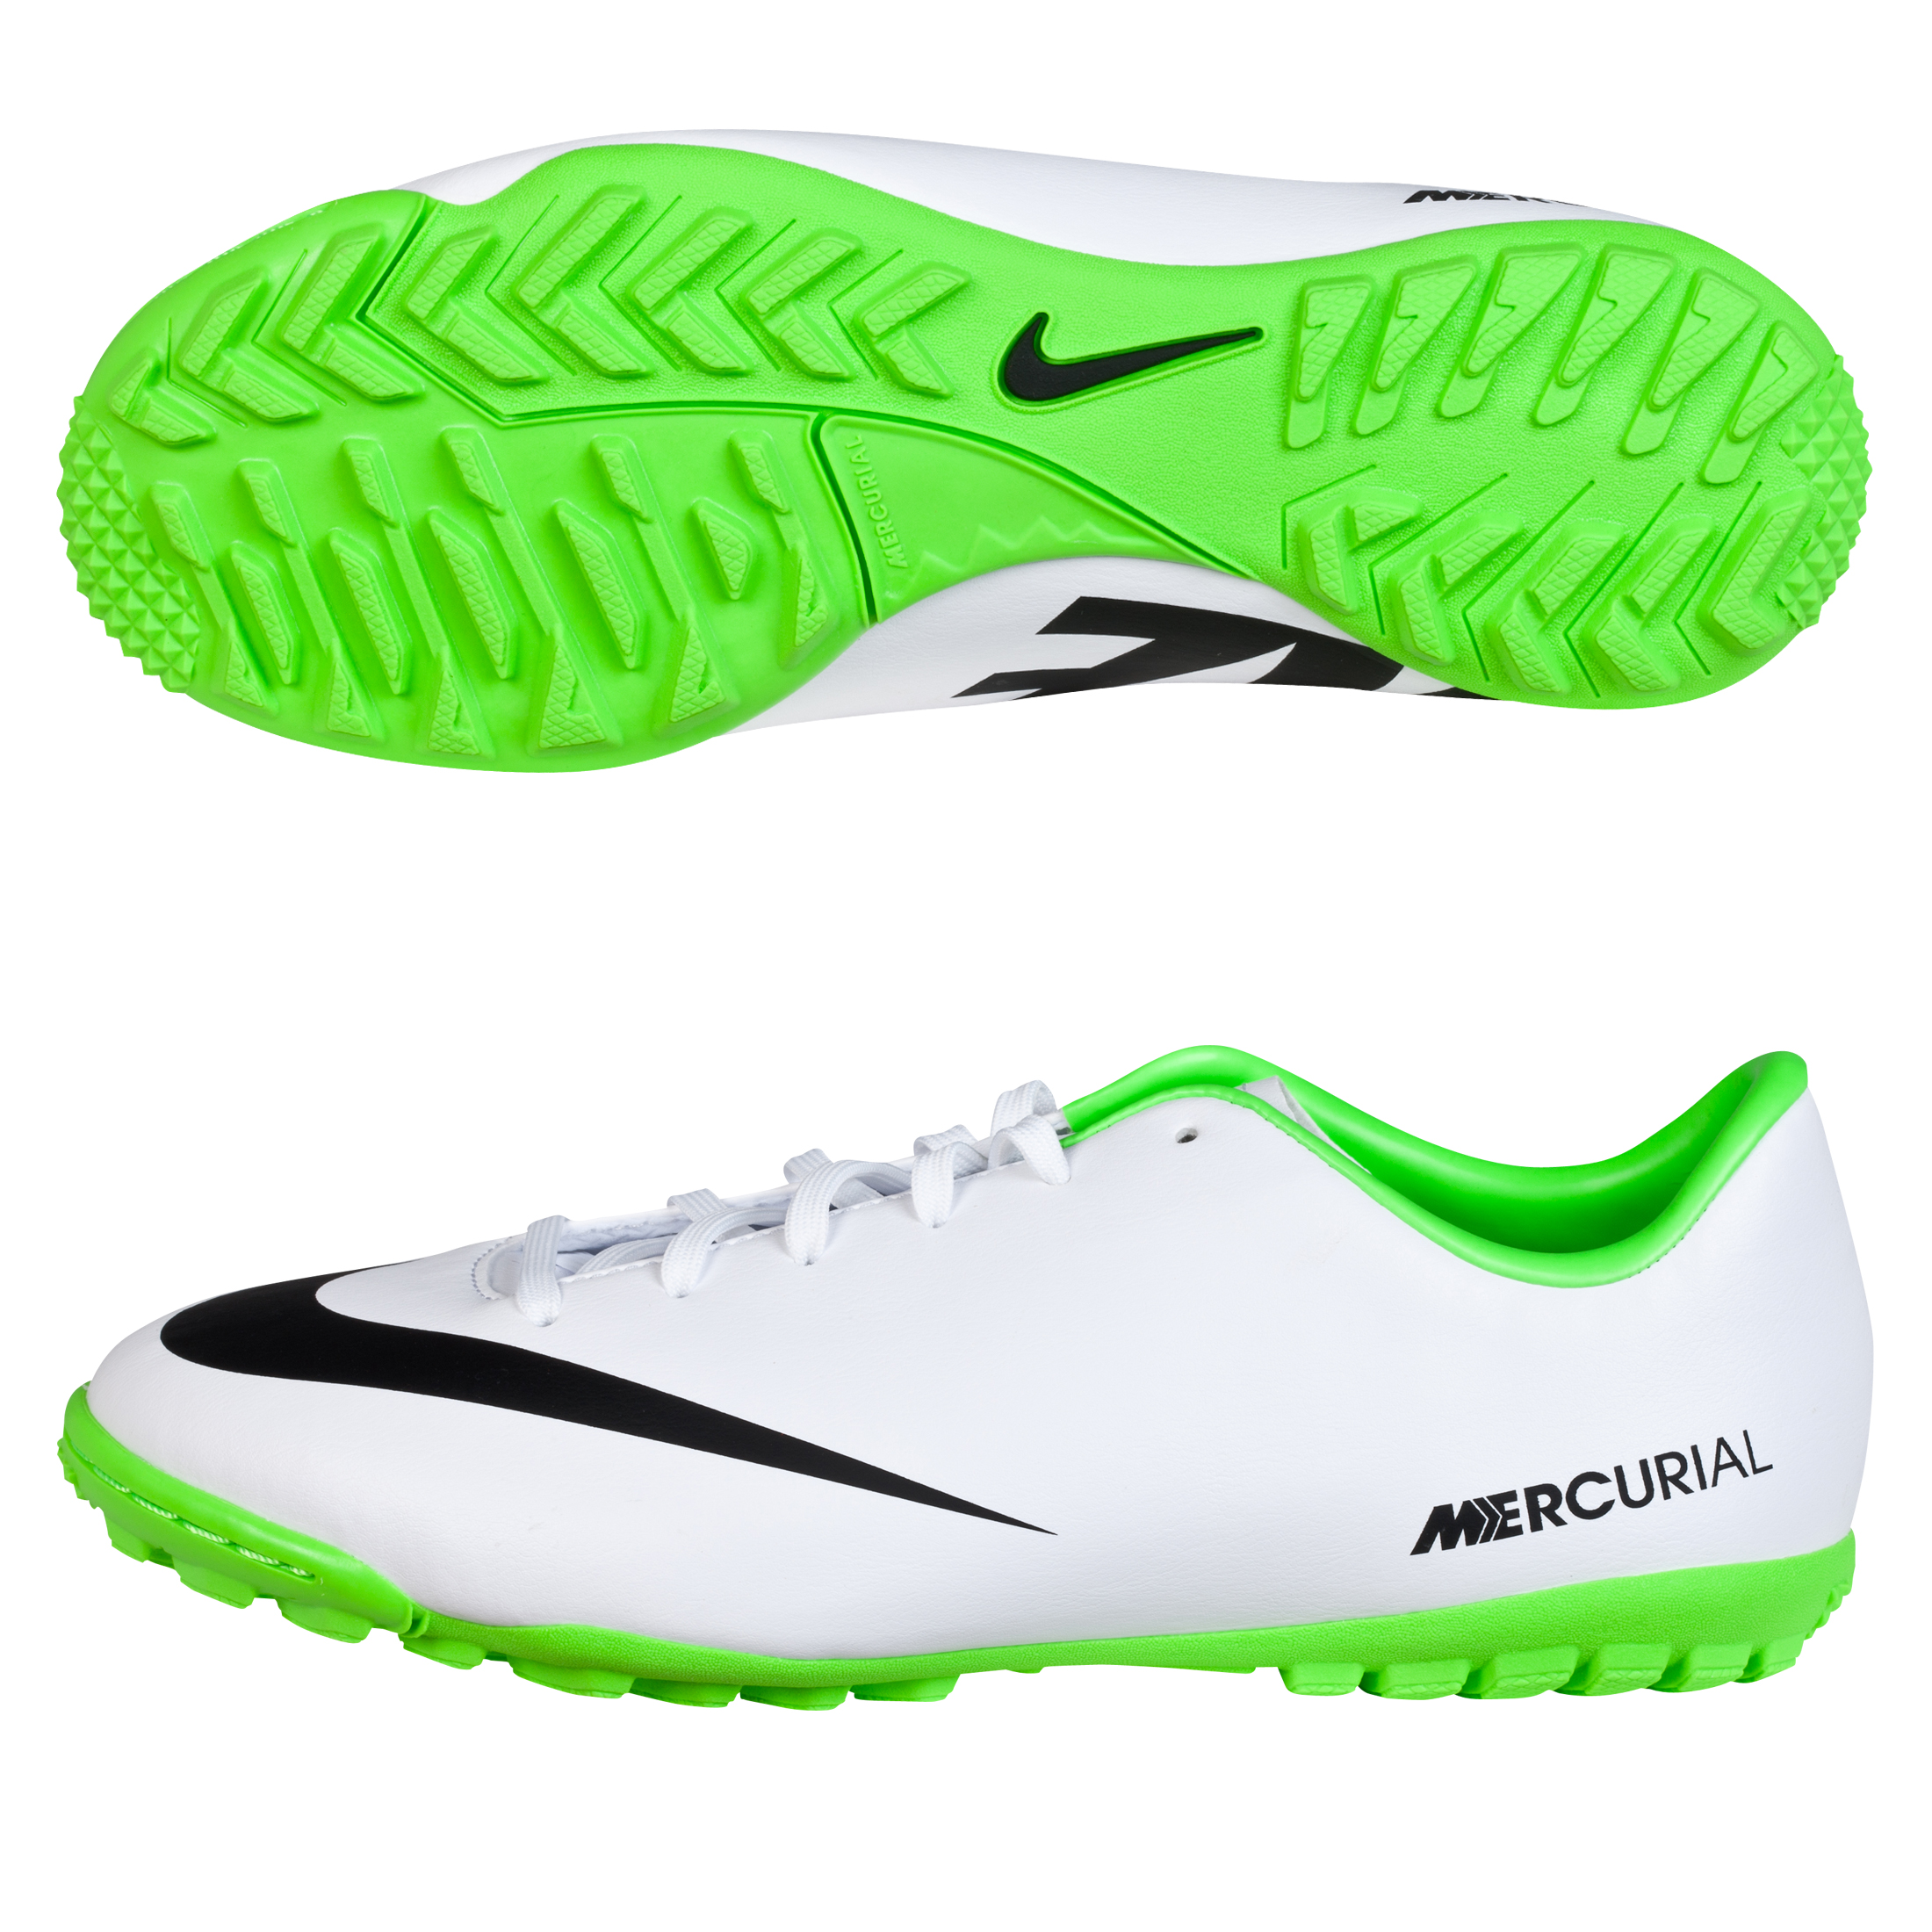 Nike Mercurial Victory IV Astroturf Trainers - Kids White